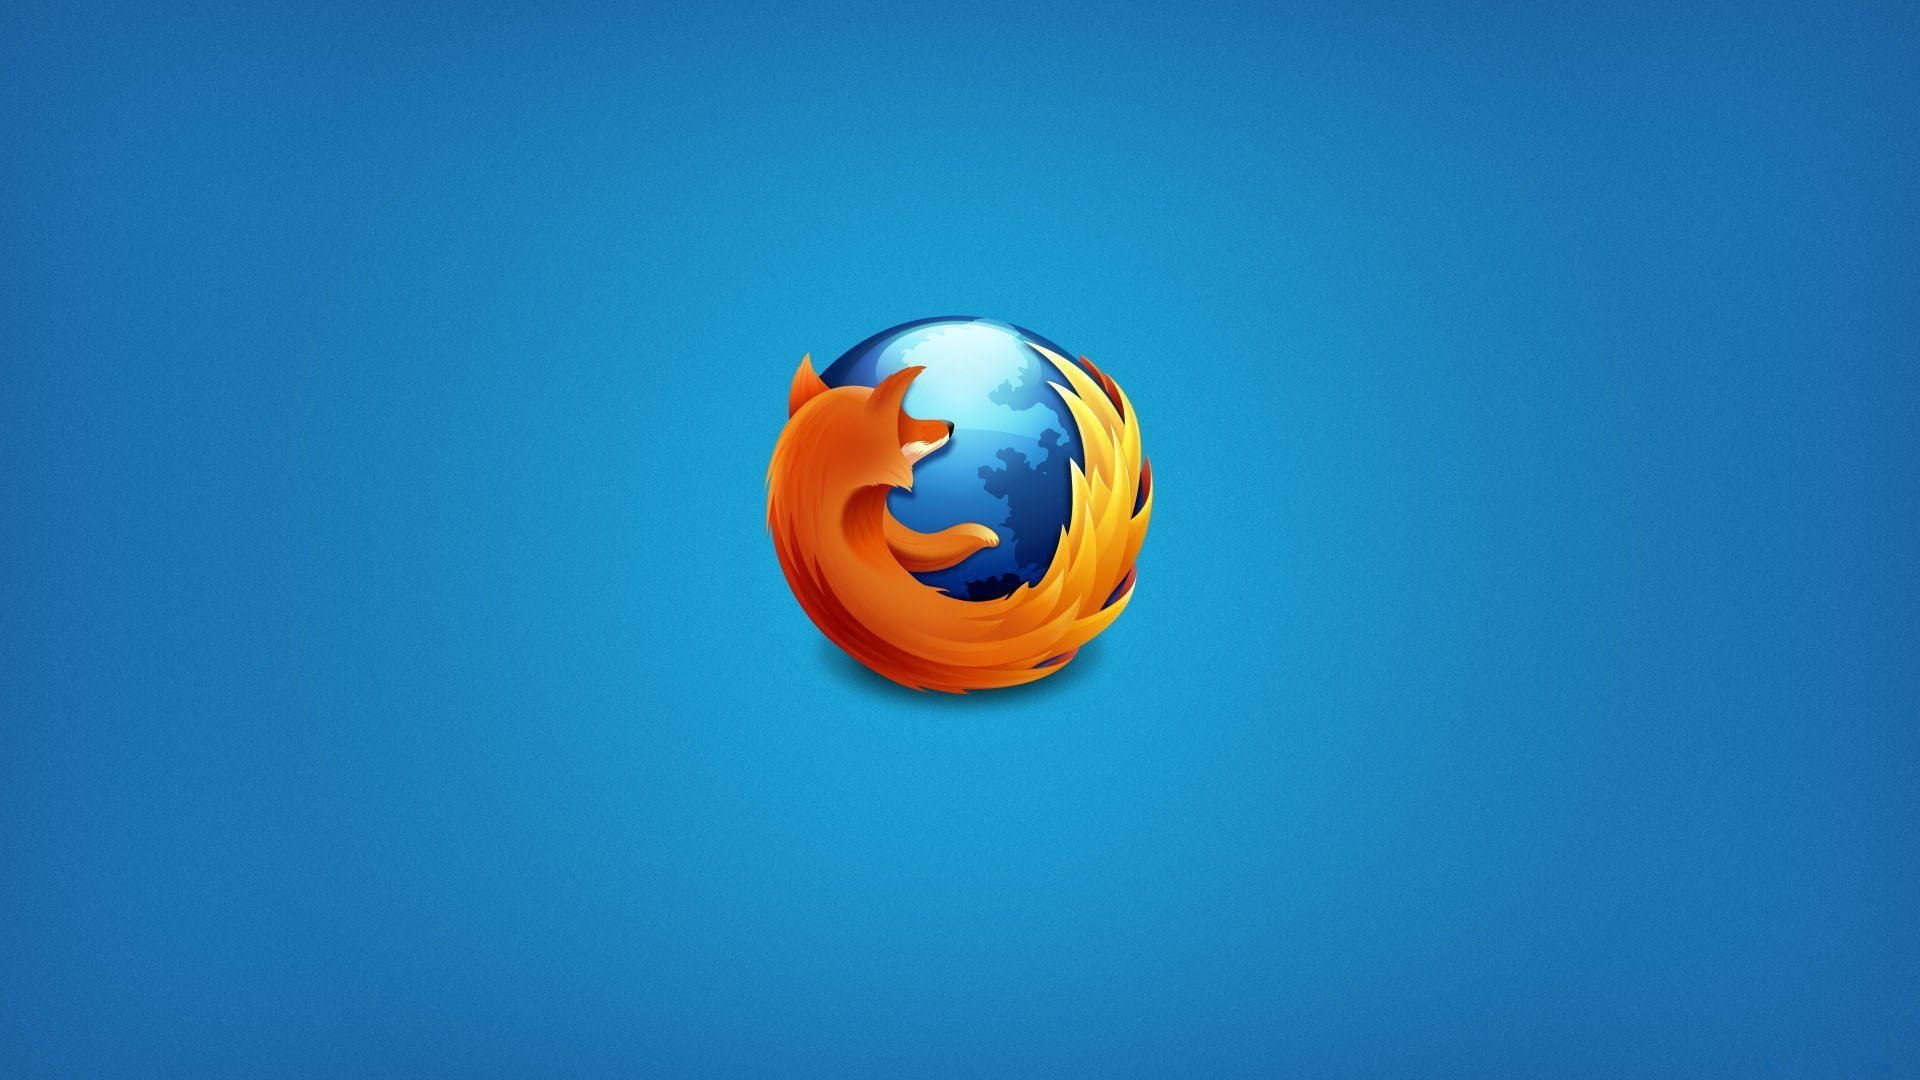 Firefox browser backgrounds wallpapersafari - How to change firefox background image ...